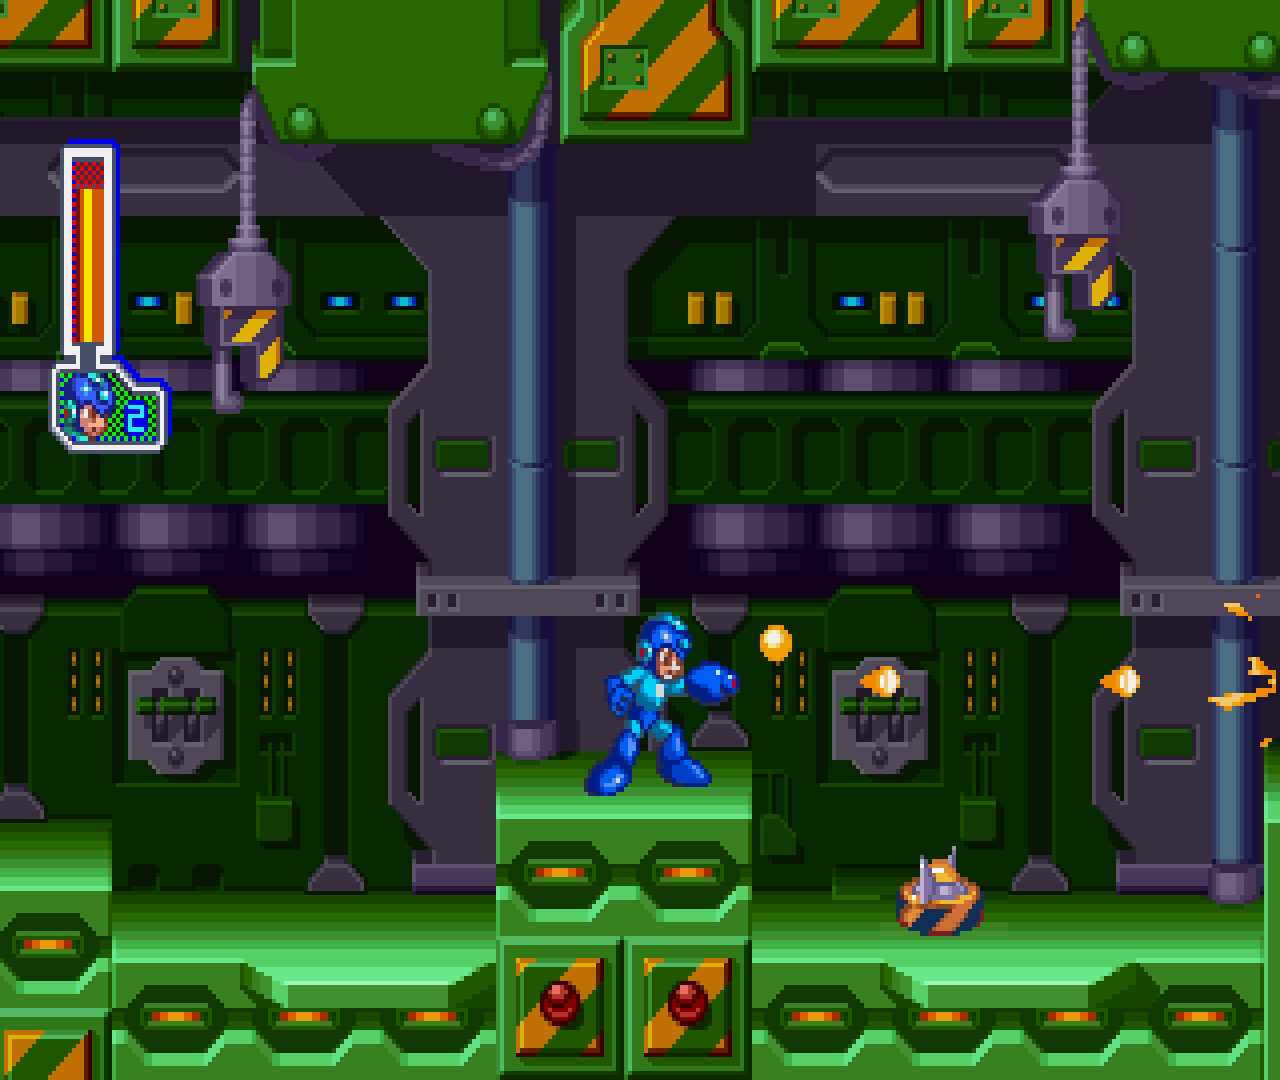 Figure 10 - There are different levels in Mega Man 8, including inside a machine dungeon